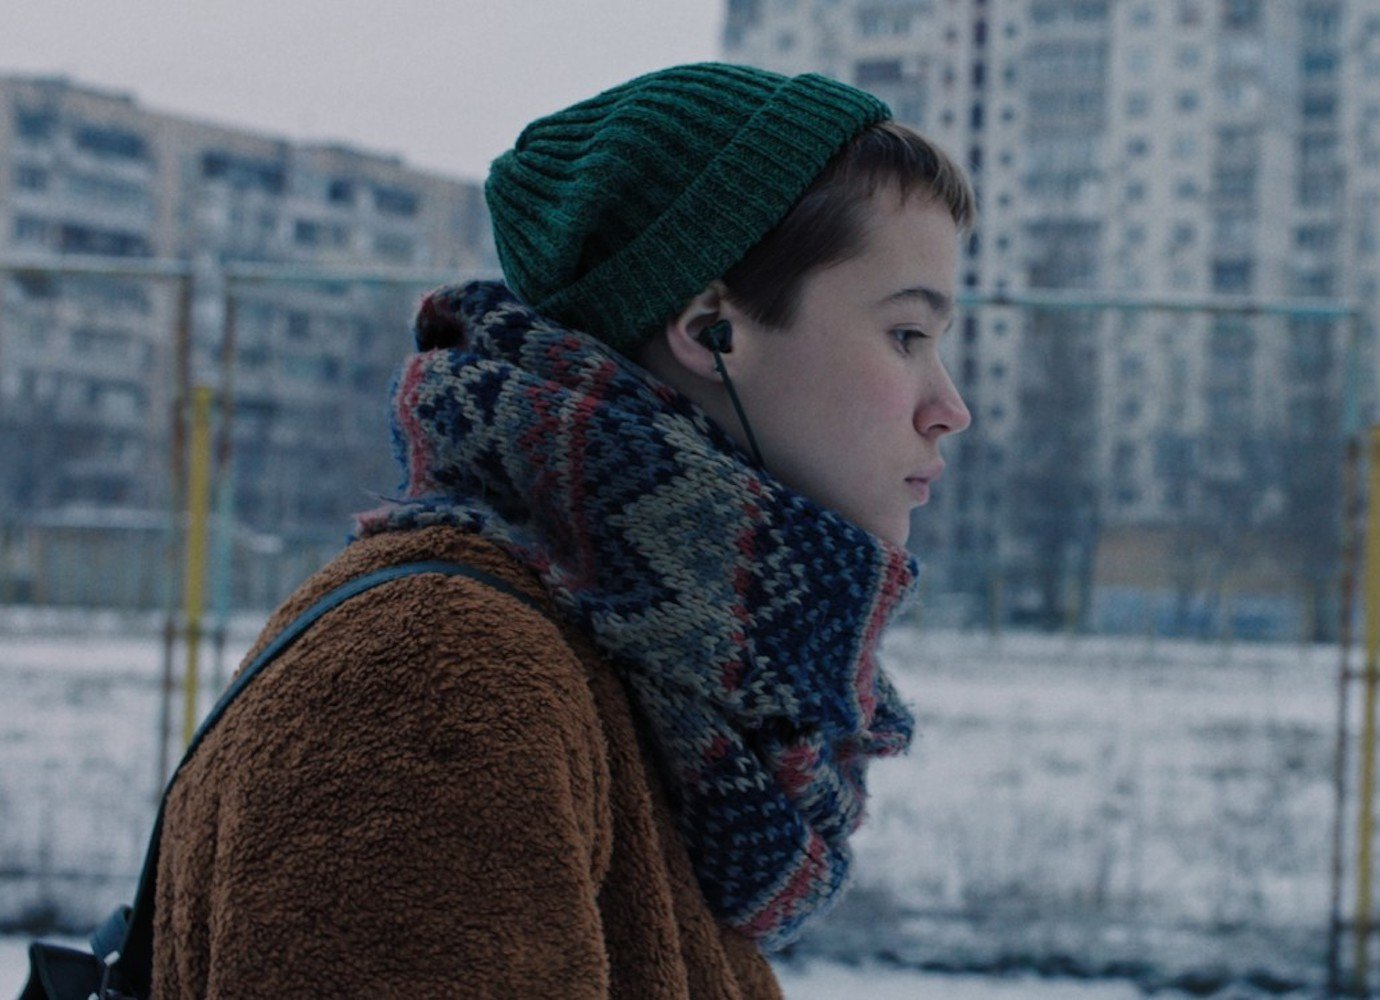 Merging reality and fiction, Stop-Zemlia is an honest account of adolescent turbulence in Ukraine